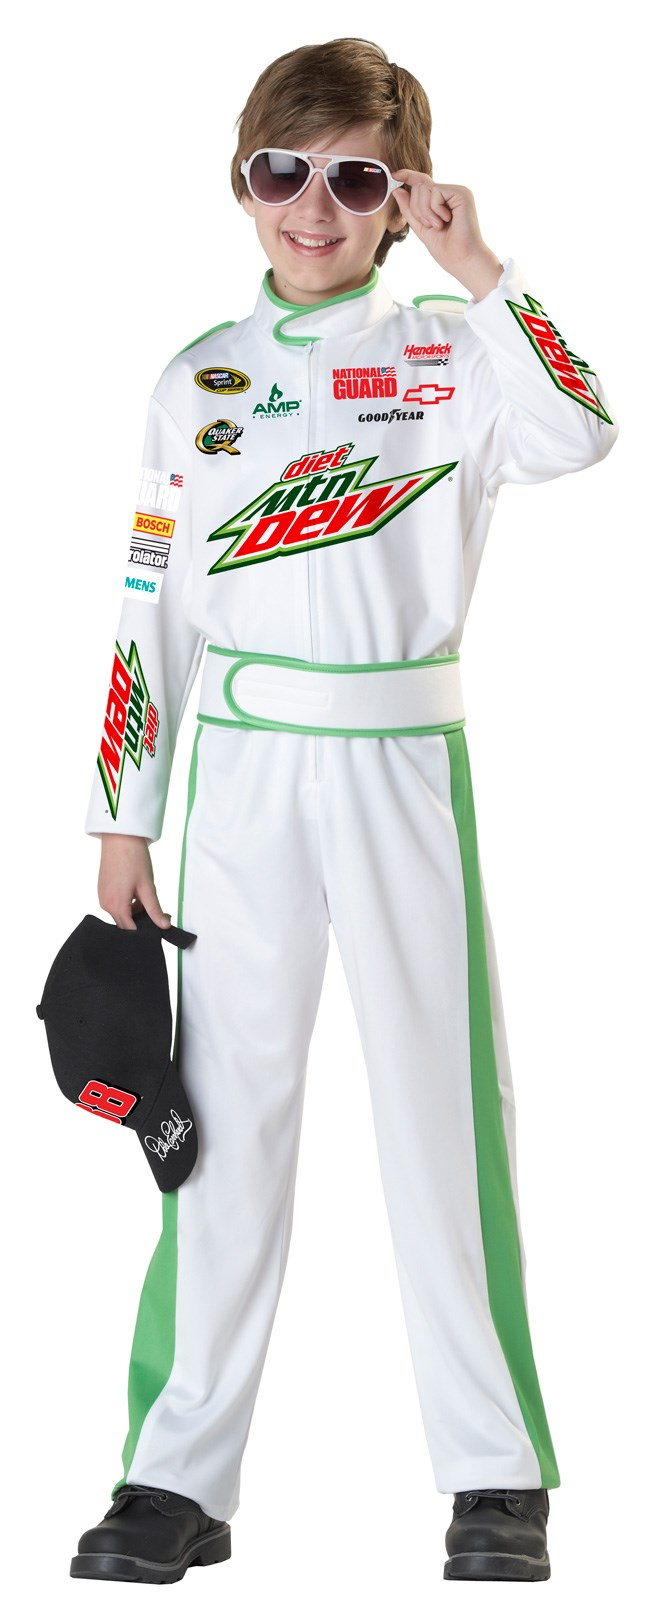 NASCAR Dale Earnhardt Jr Kids Costume Small (6-8)